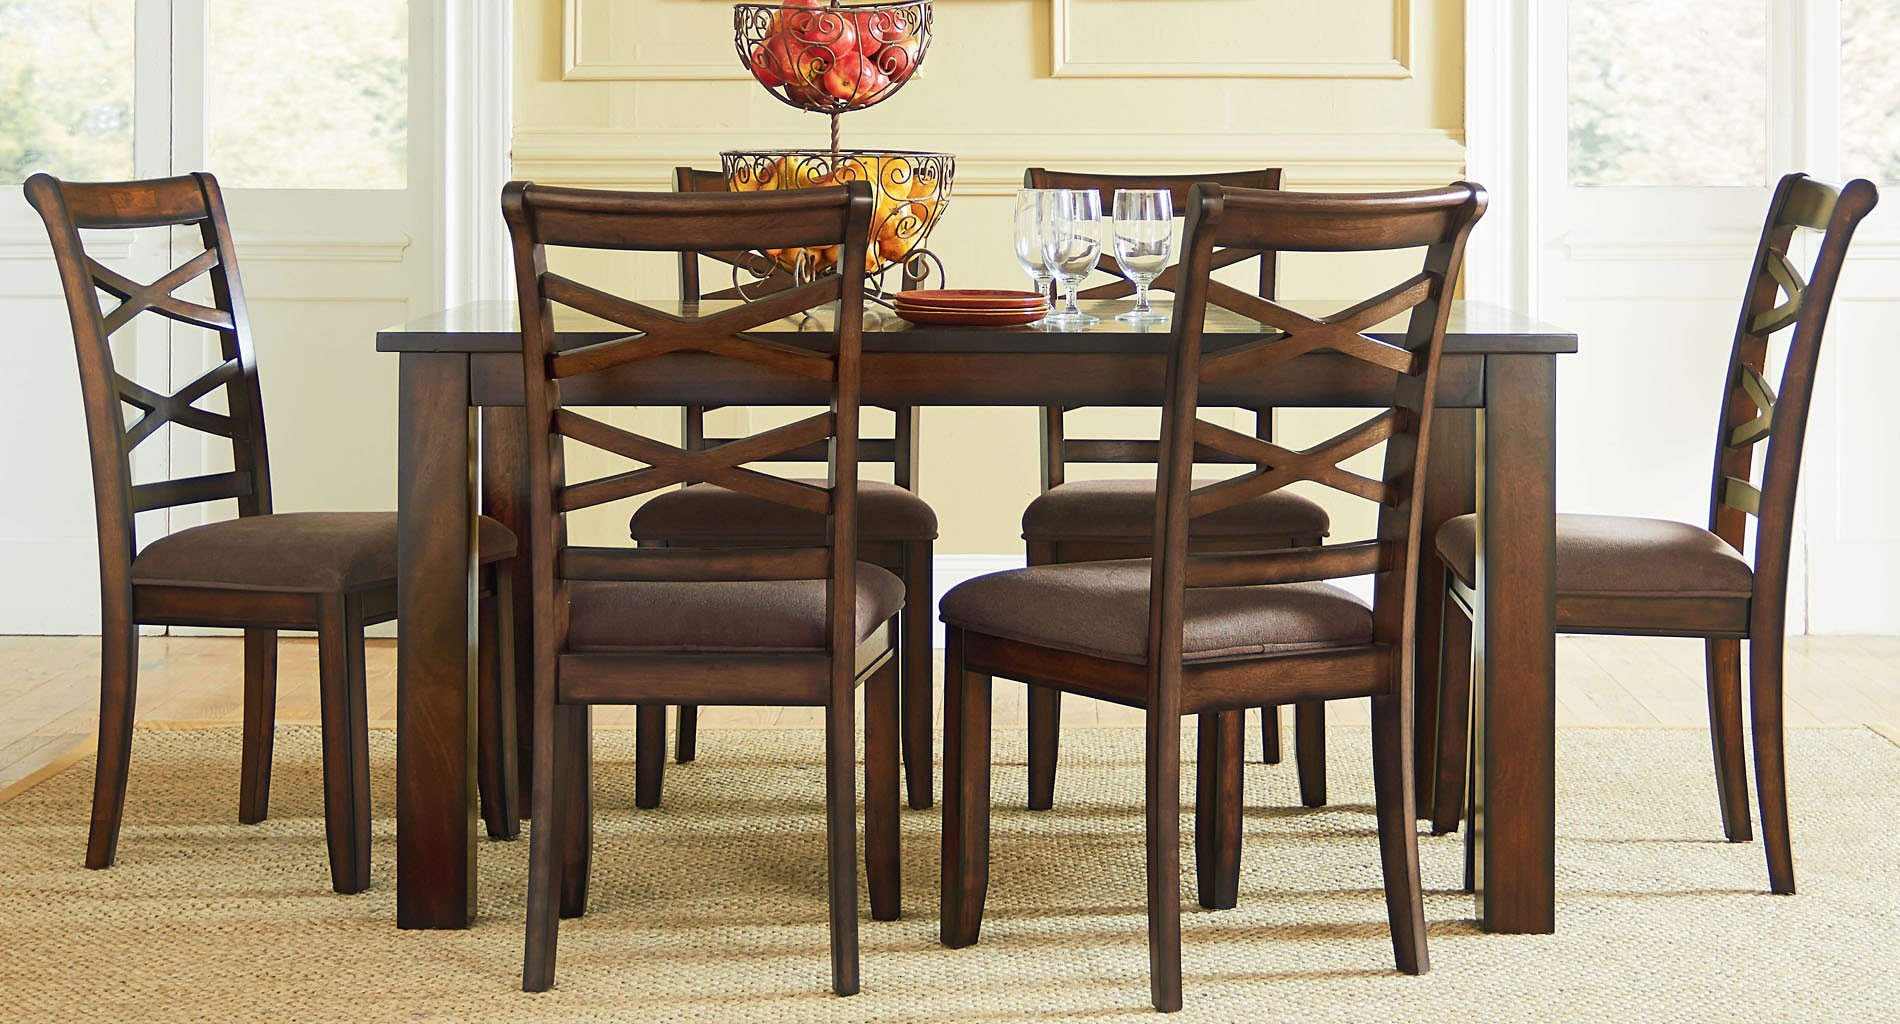 Redondo 7-Piece Dining Room Set (Cherry) Standard Furniture ...